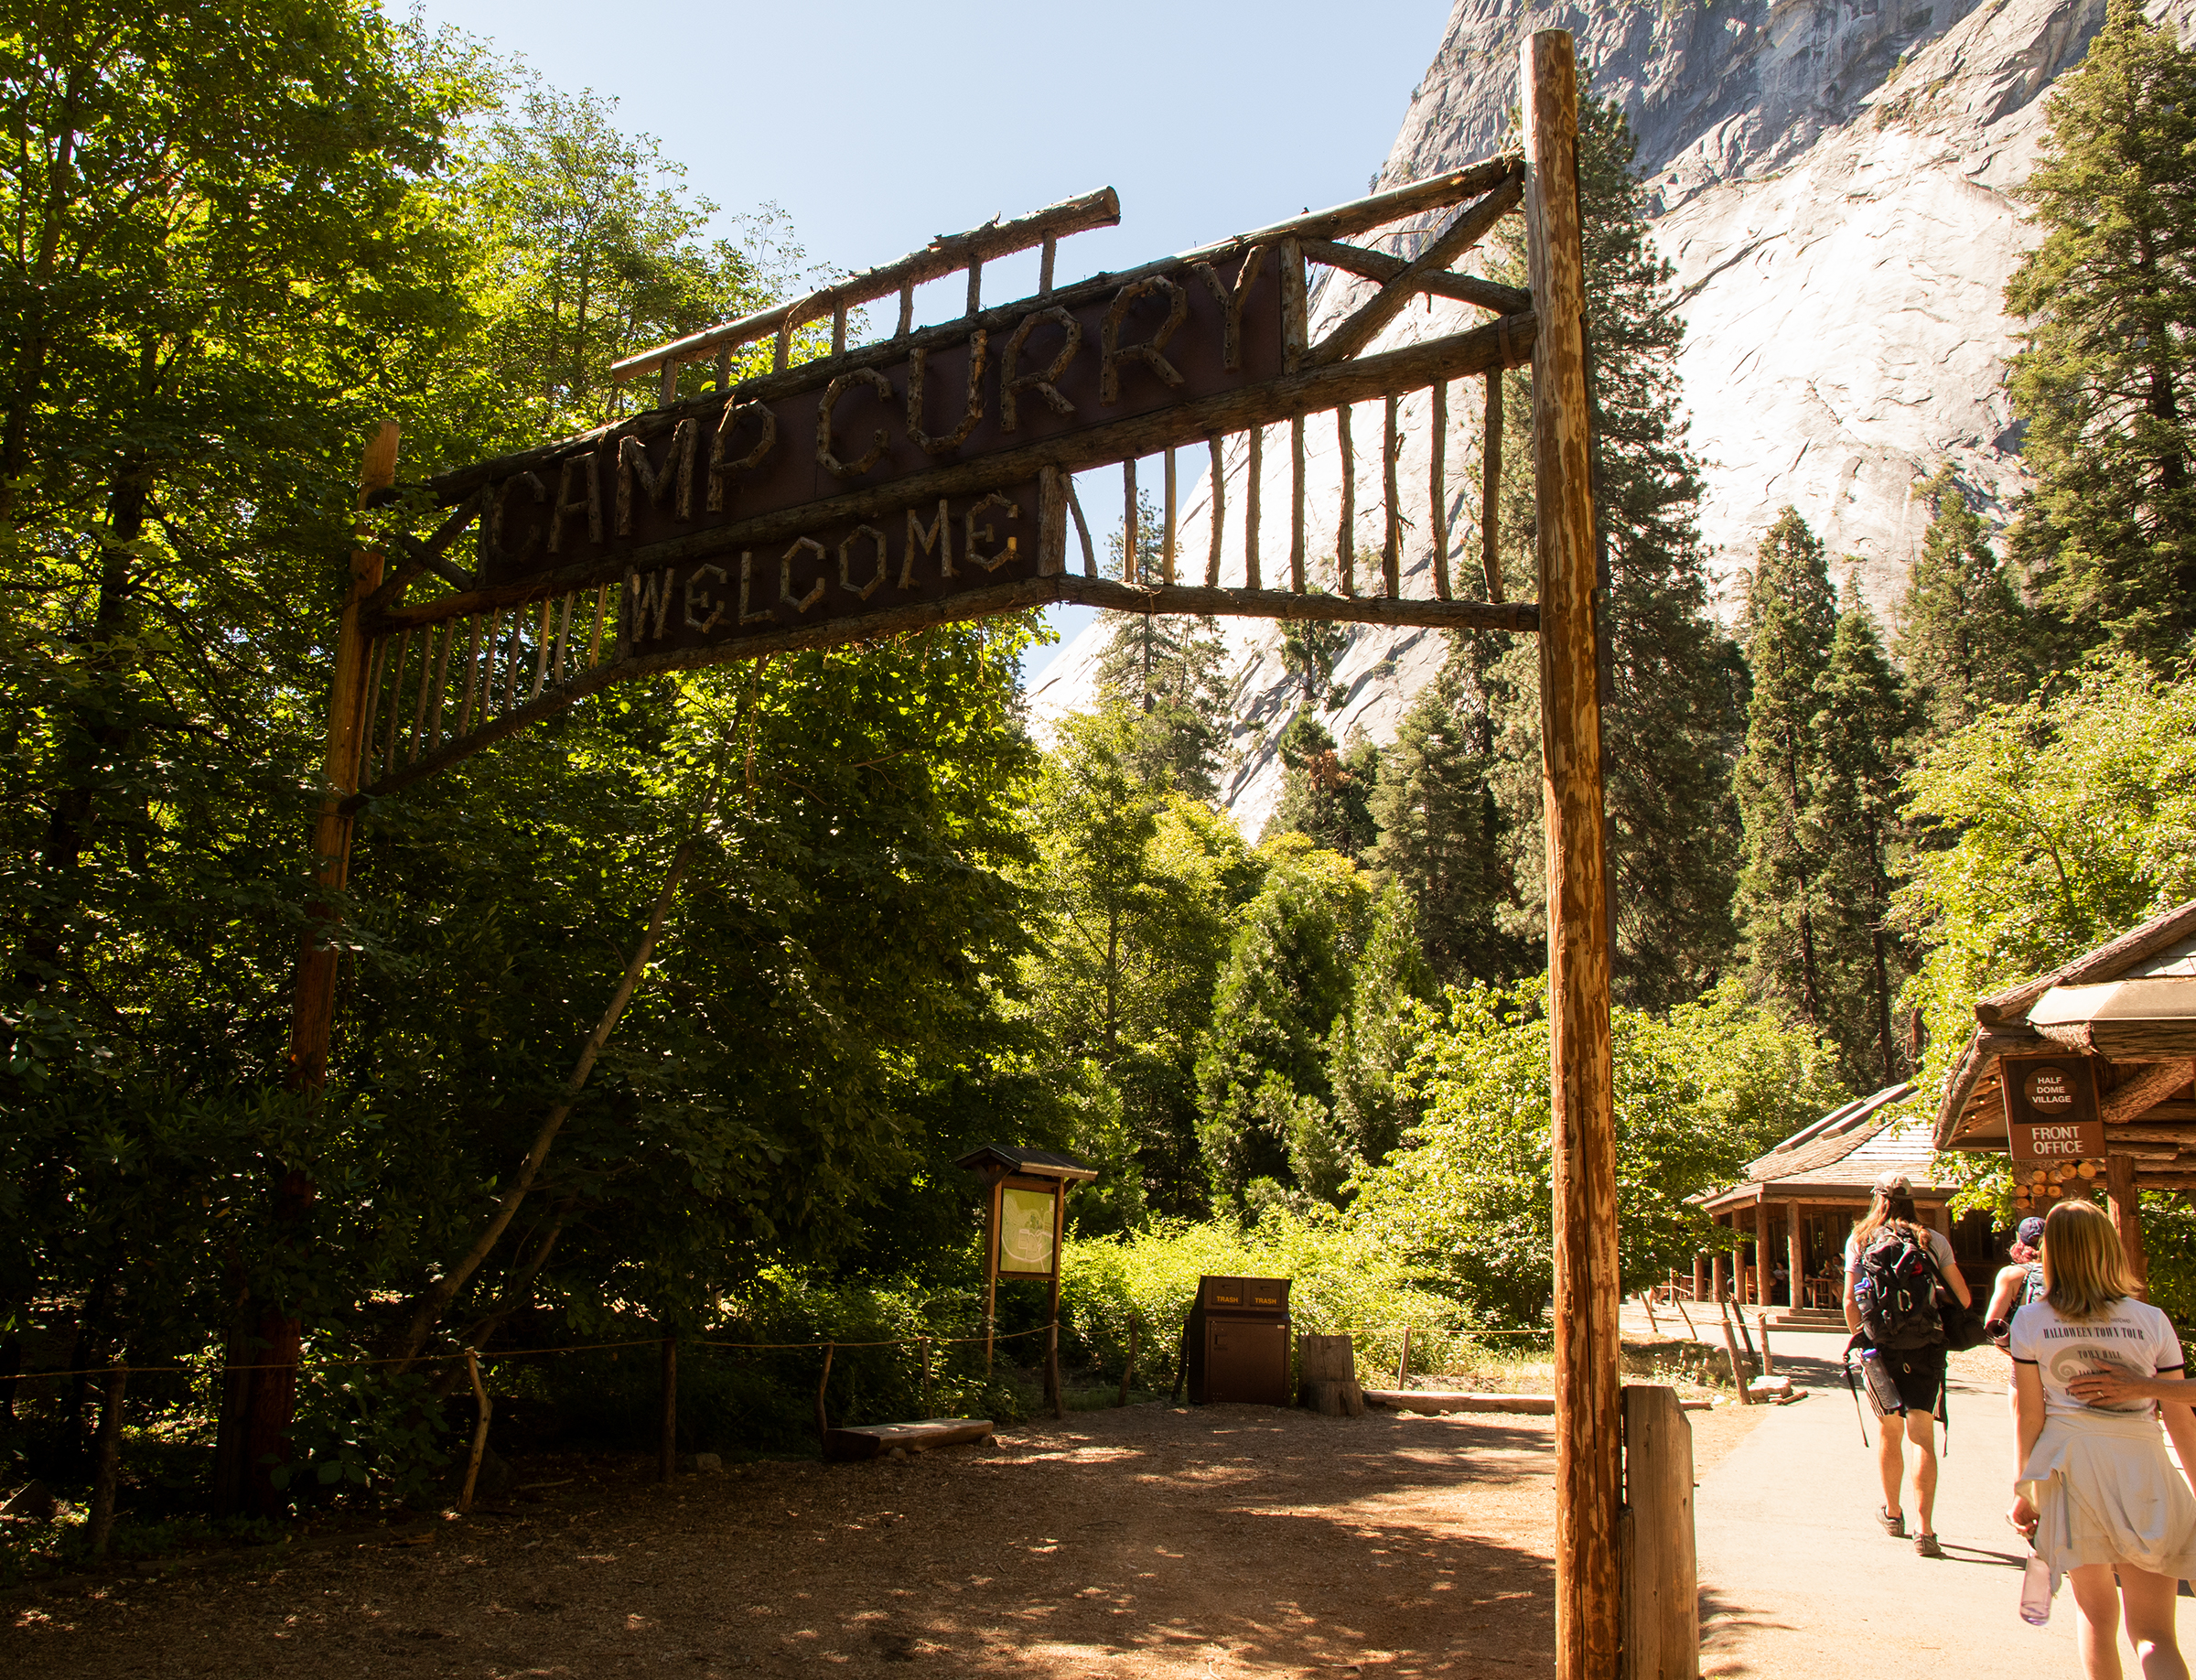 170 people sickened at Yosemite National Park after likely norovirus outbreak